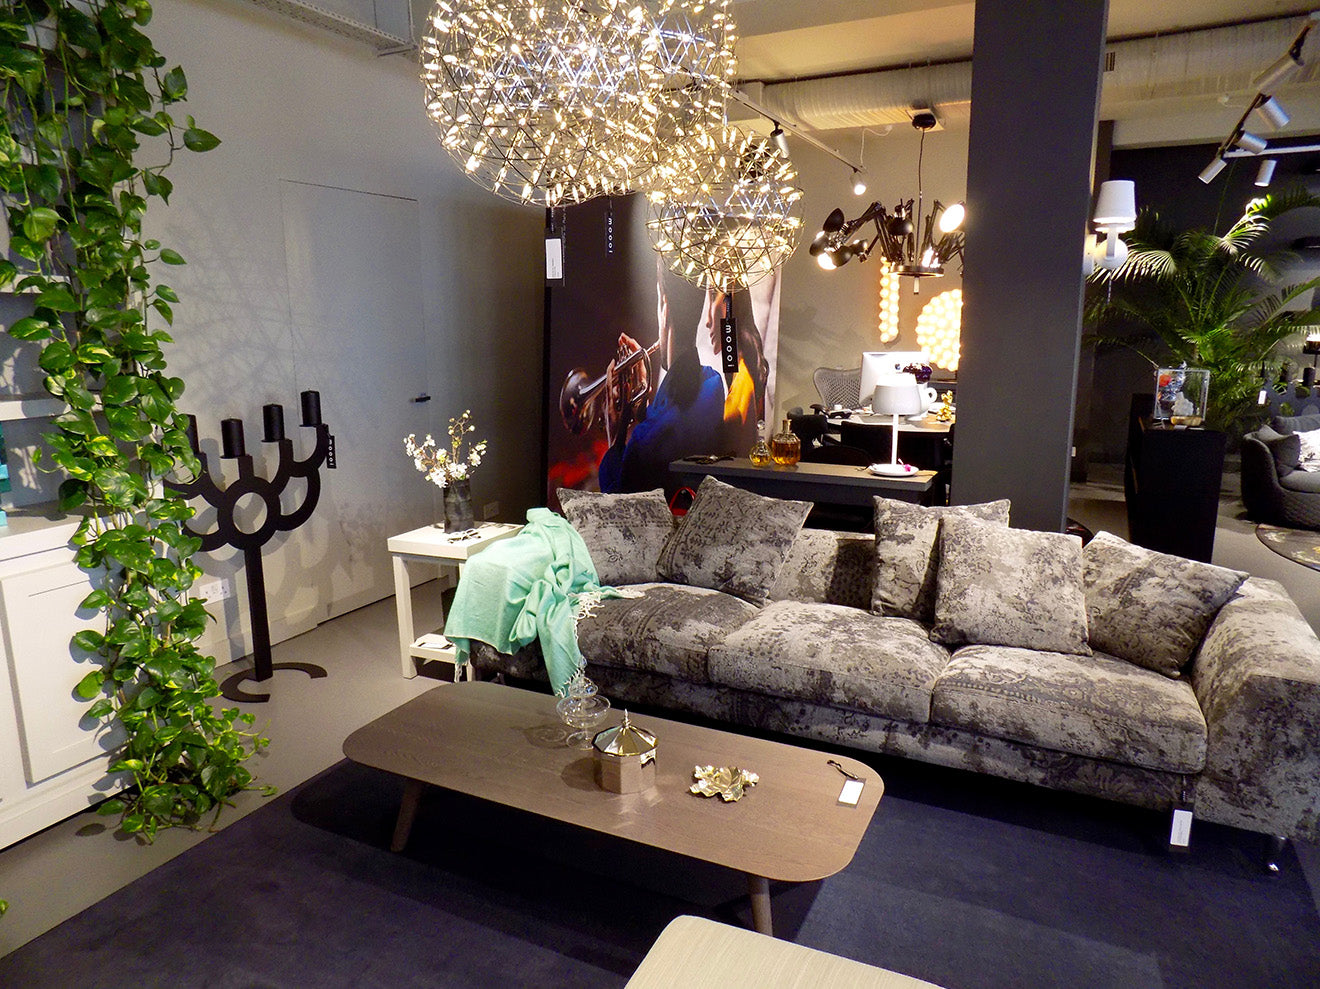 Moooi London showroom displaying furniture, accessories and lighting designs